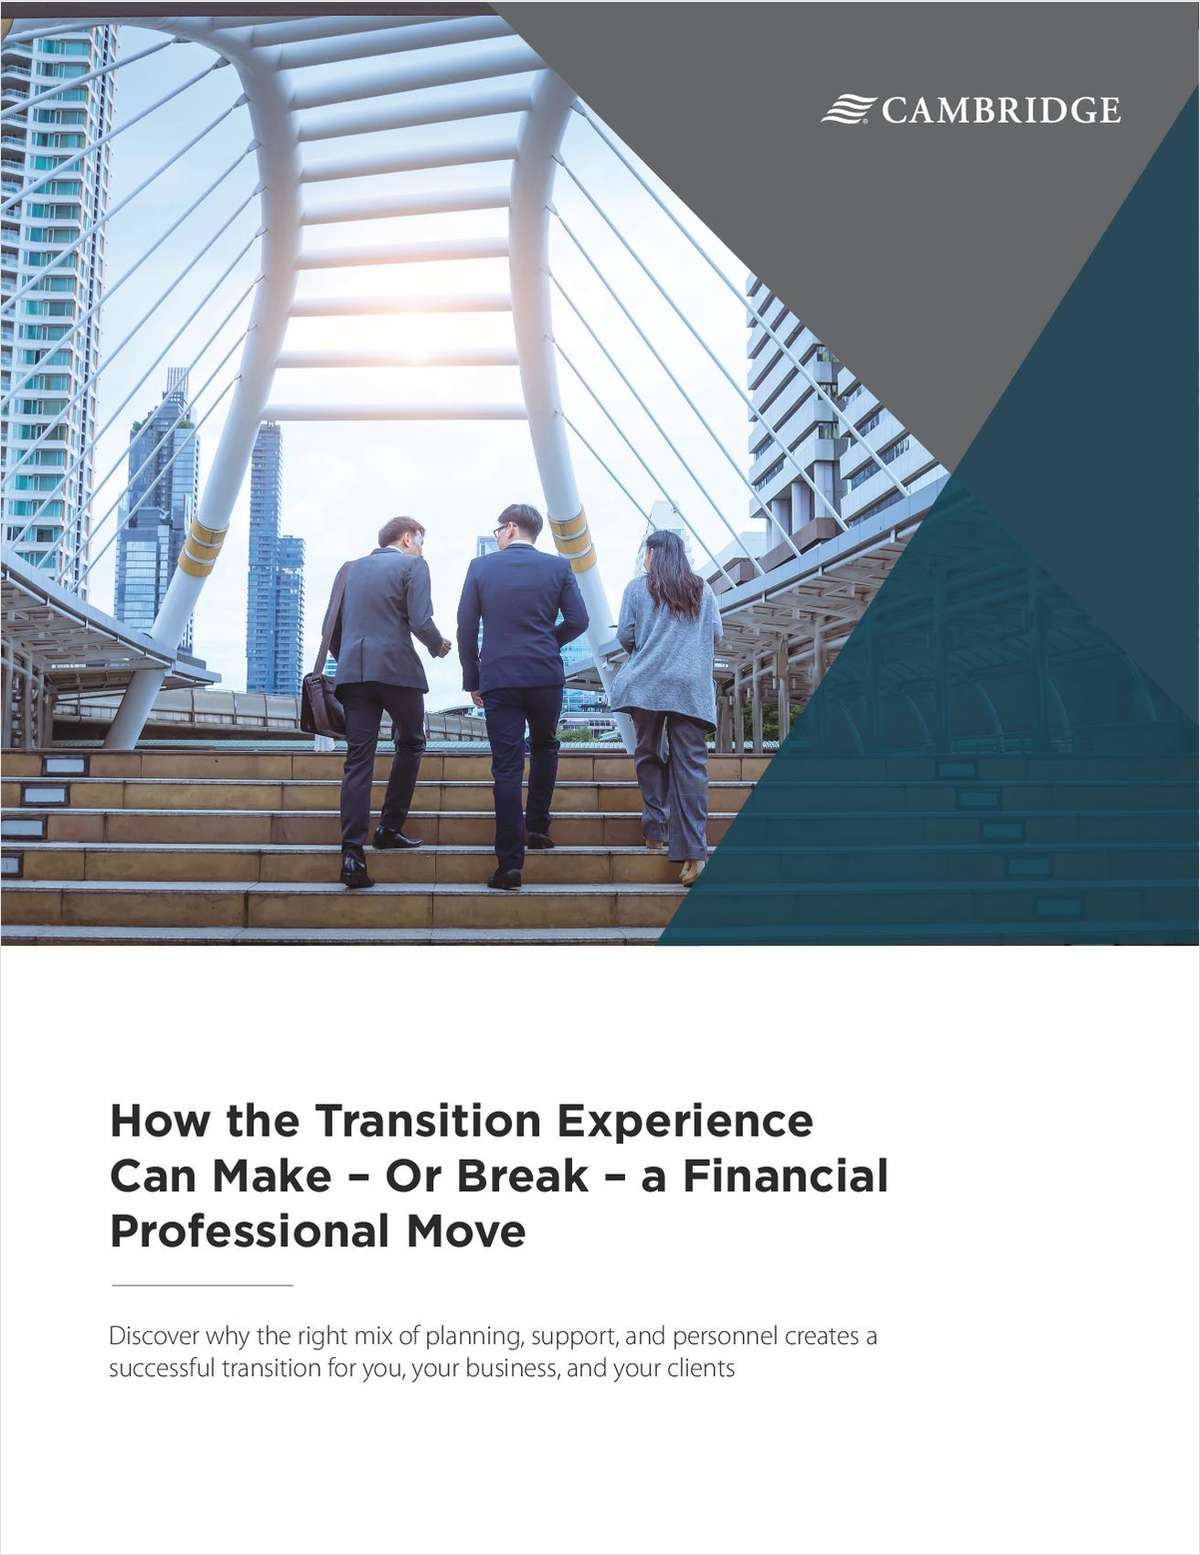 How the Transition Experience Can Make -- Or Break -- a Financial Professional's Move